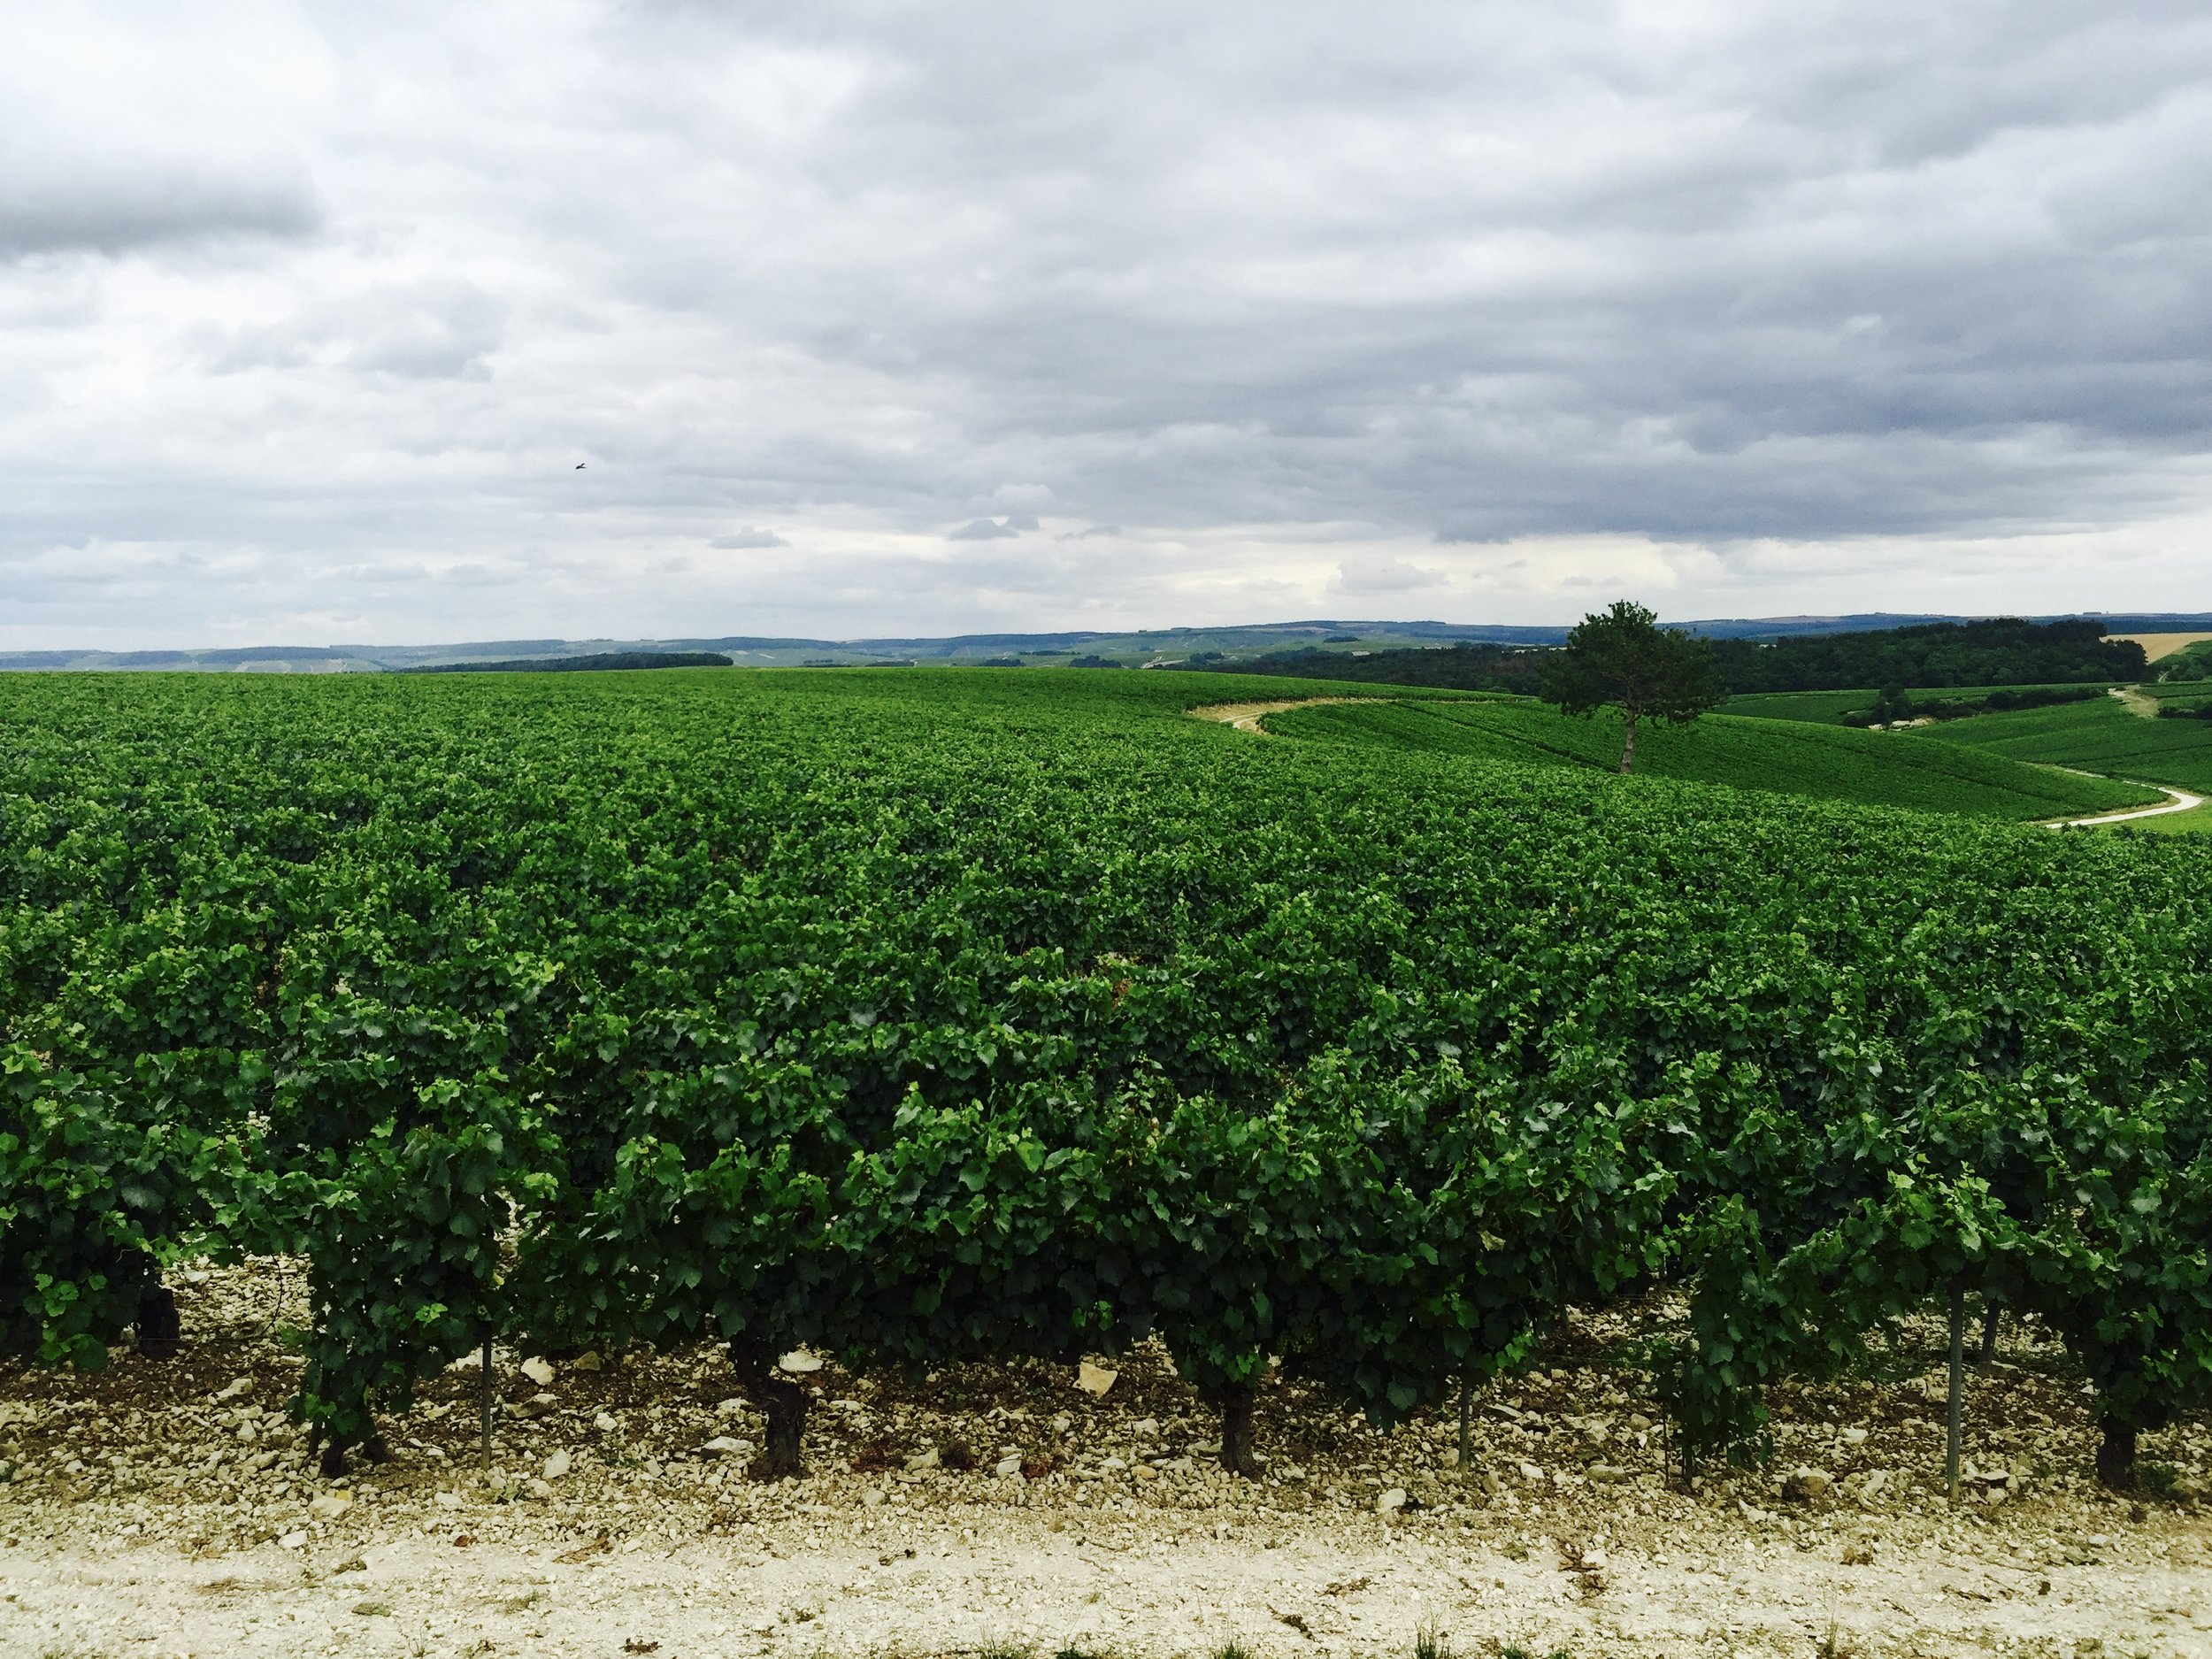 Vineyards around Jean-Marc Brocard estate. Grand Crus at the backdrop (Photo credit: Sumi_Sumilier)